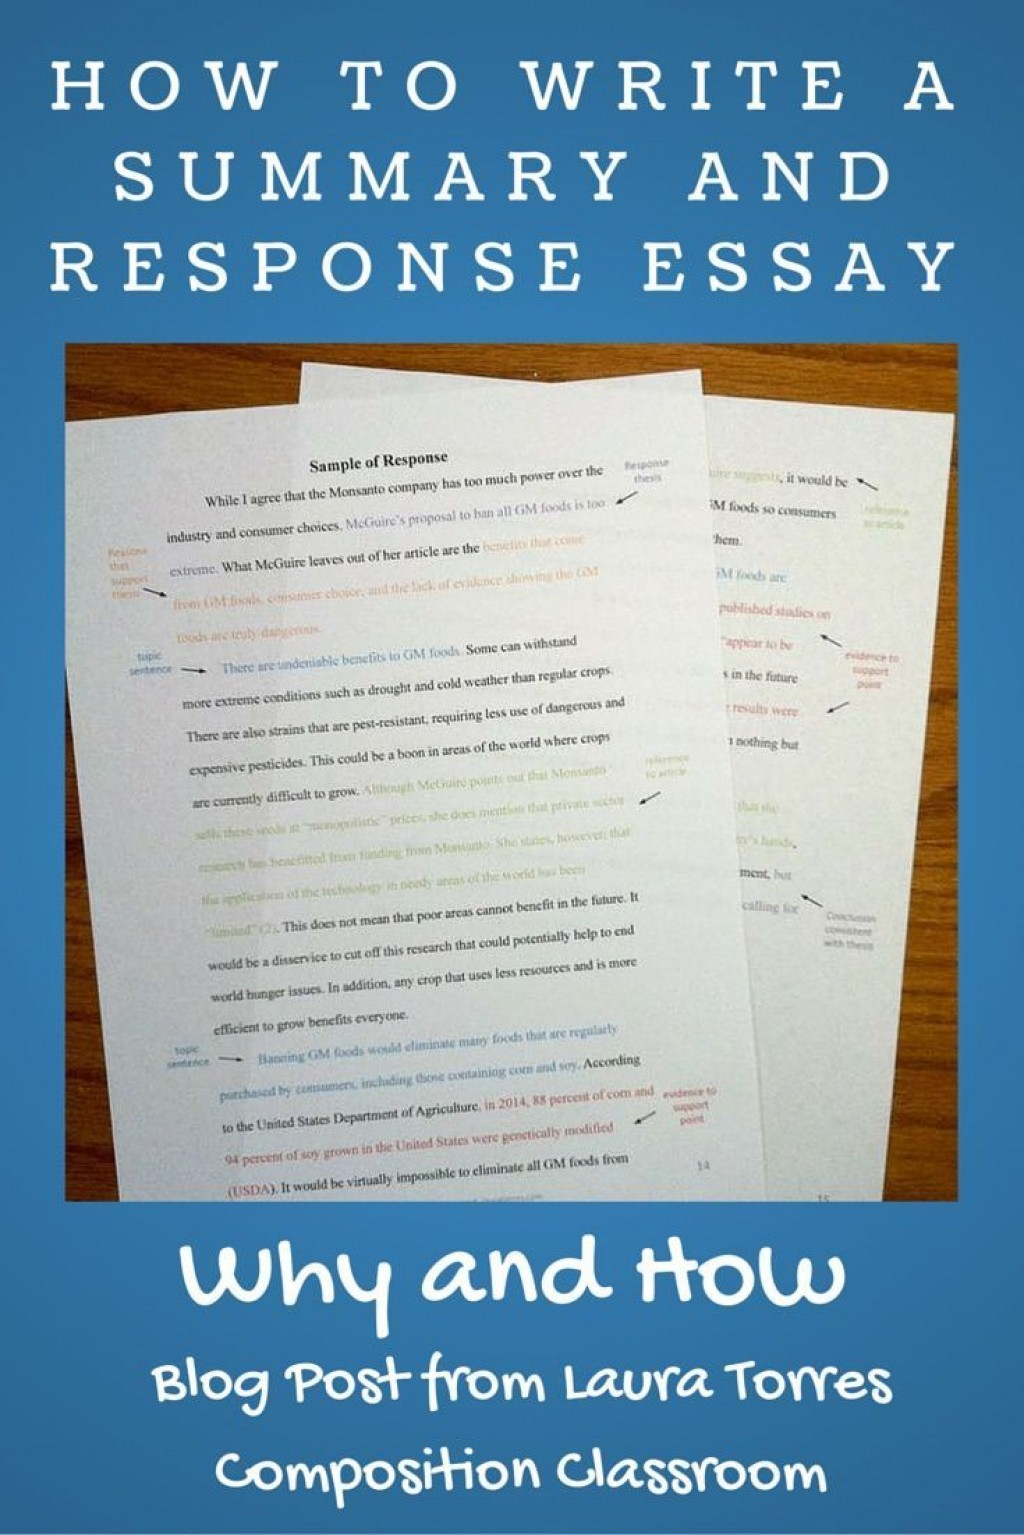 021 Response Essay Example Impressive Format Definition Conclusion Large